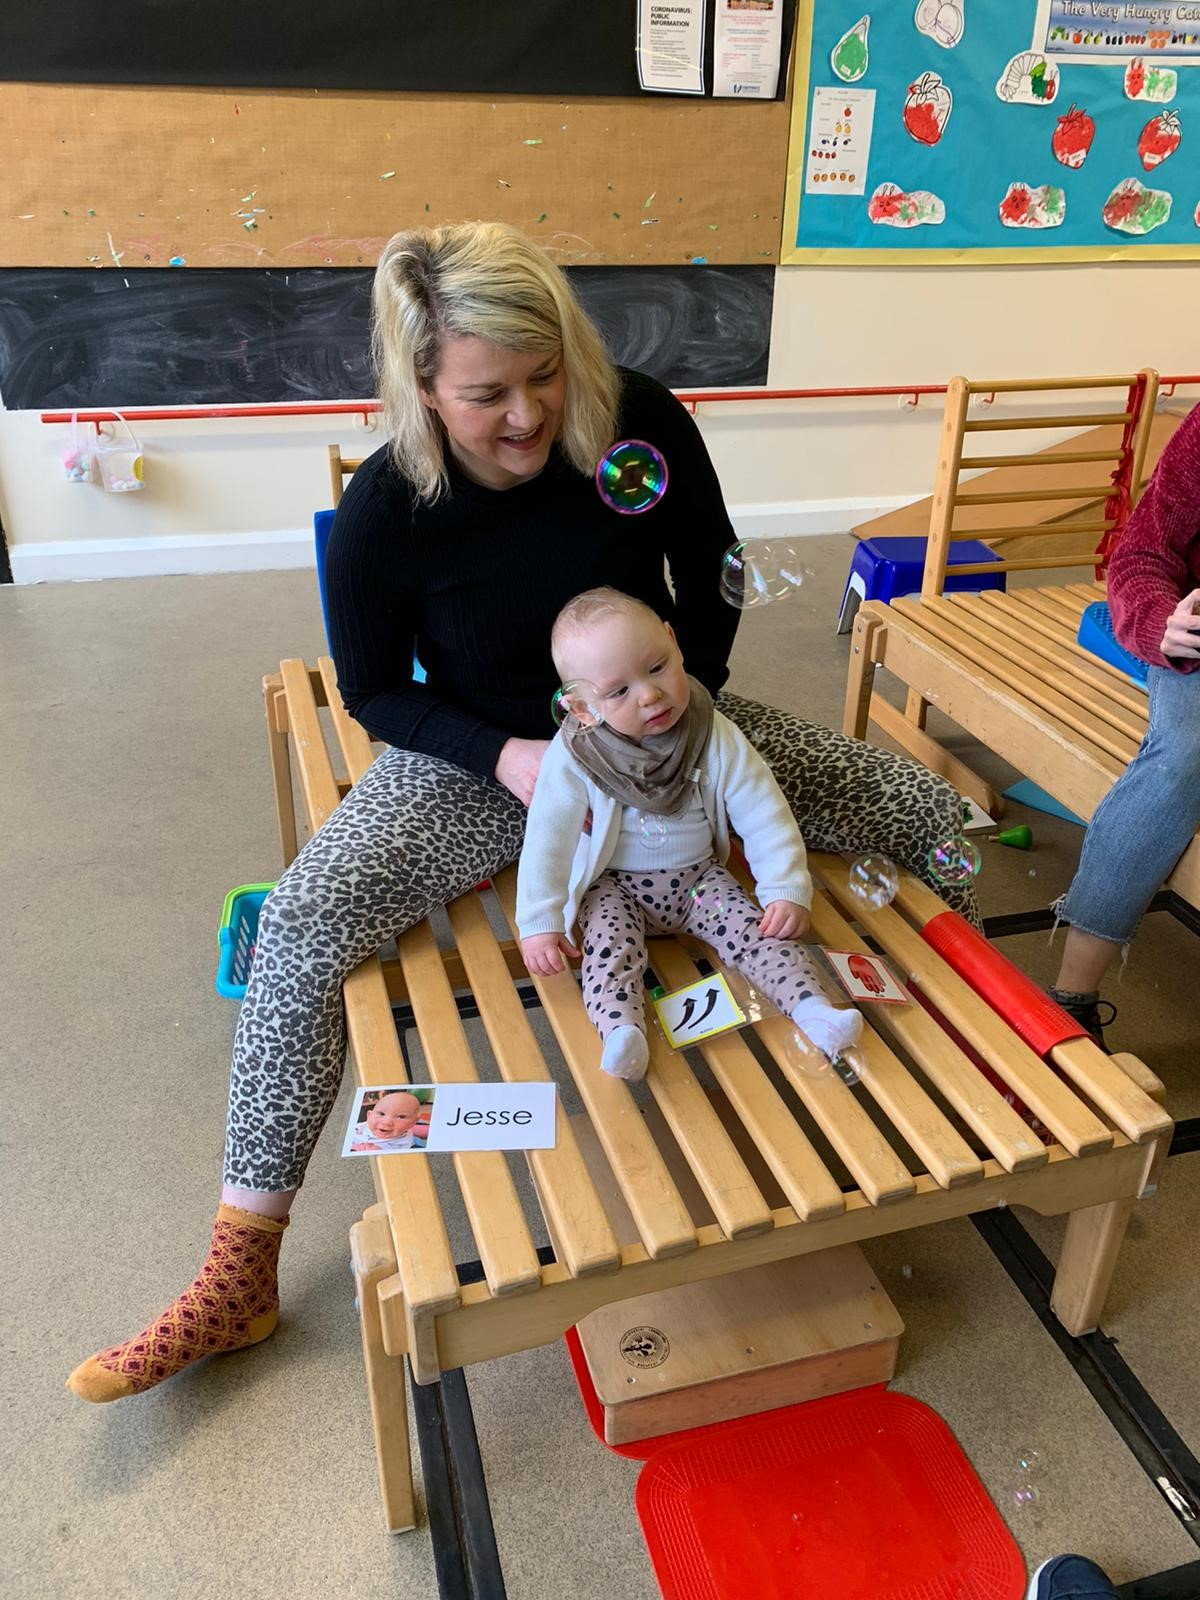 40 years of specialist care and support for East Midland's families - disabled children's charity Footprints hopes to celebrate four decades but faces funding challenges ahead